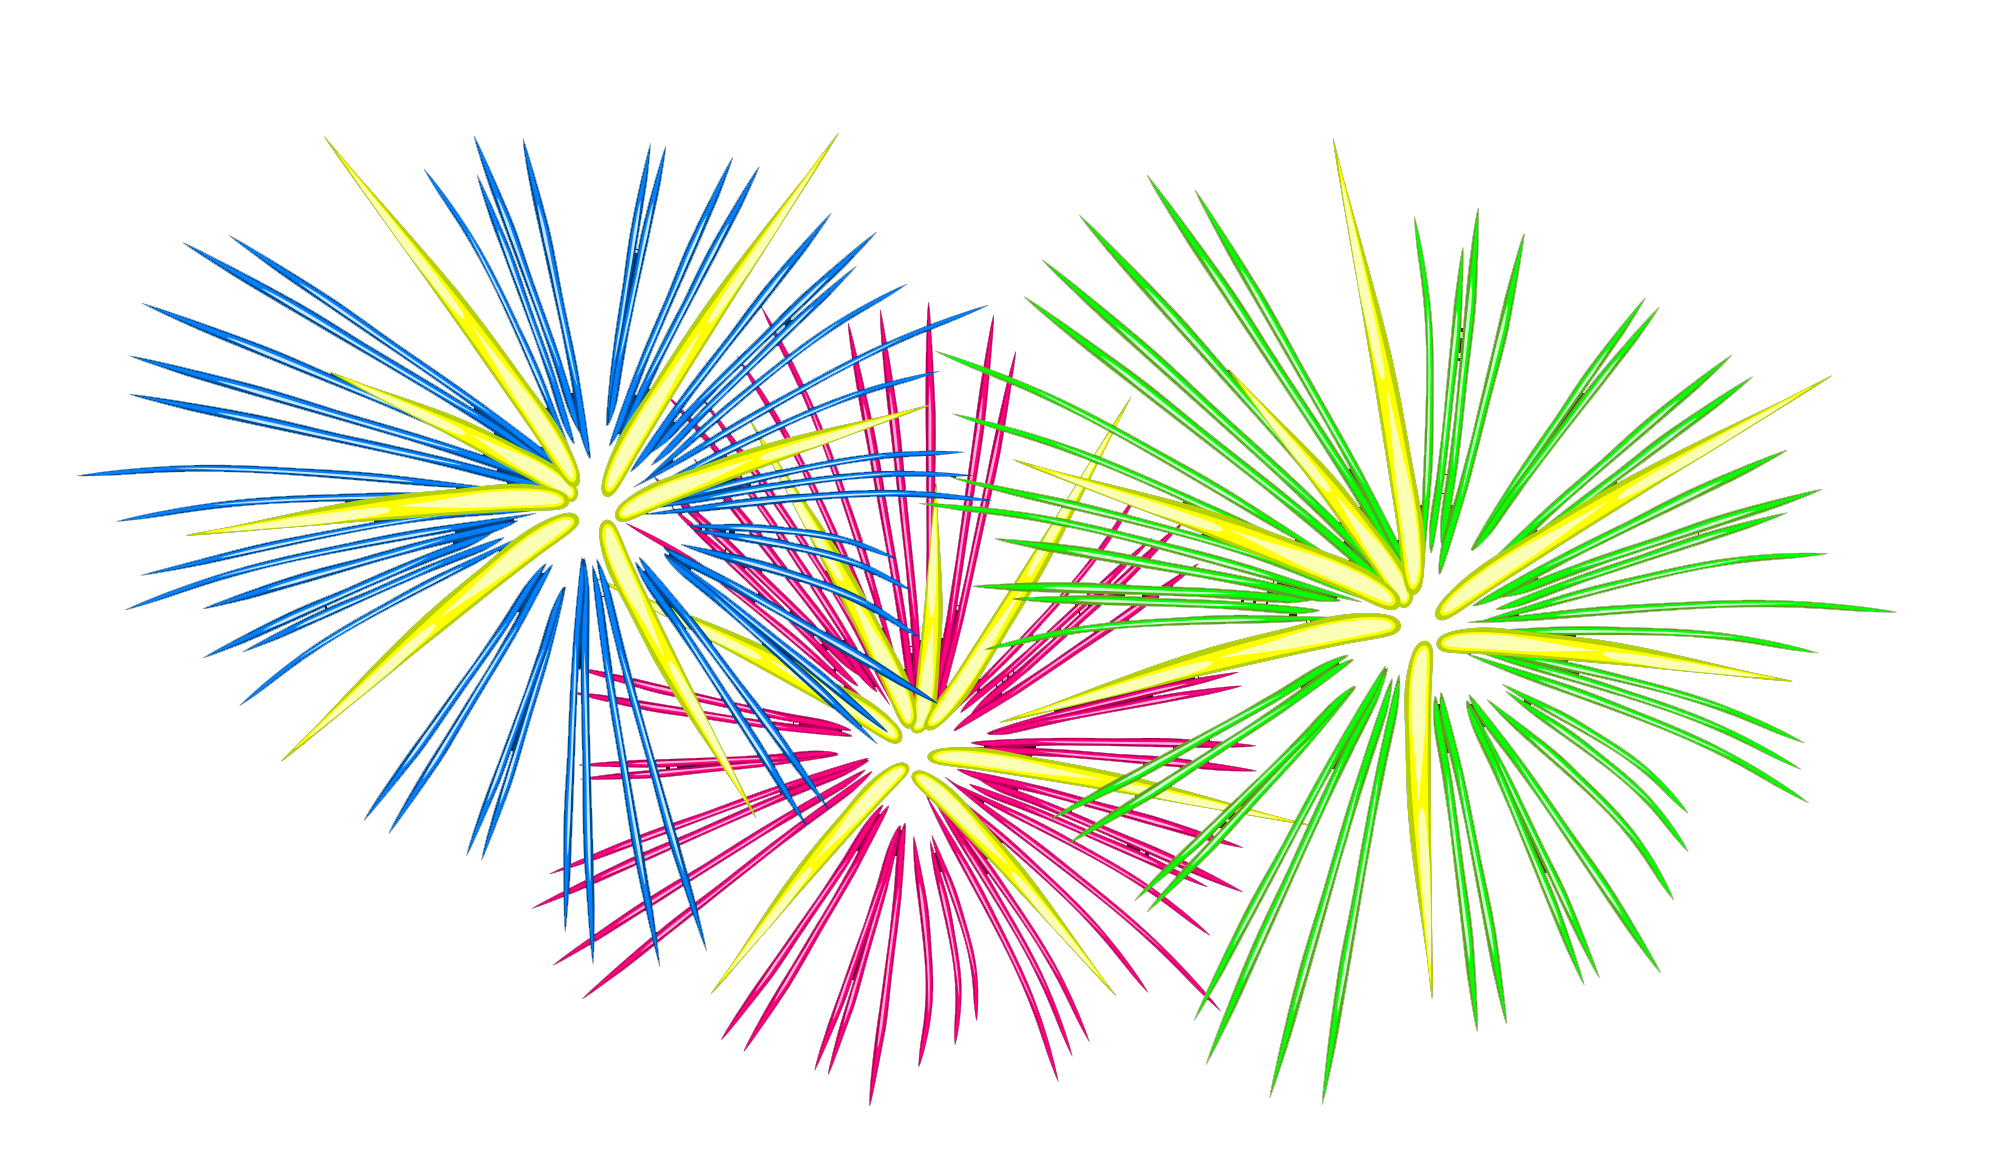 Explosion clipart diwali bomb. Fireworks png images free